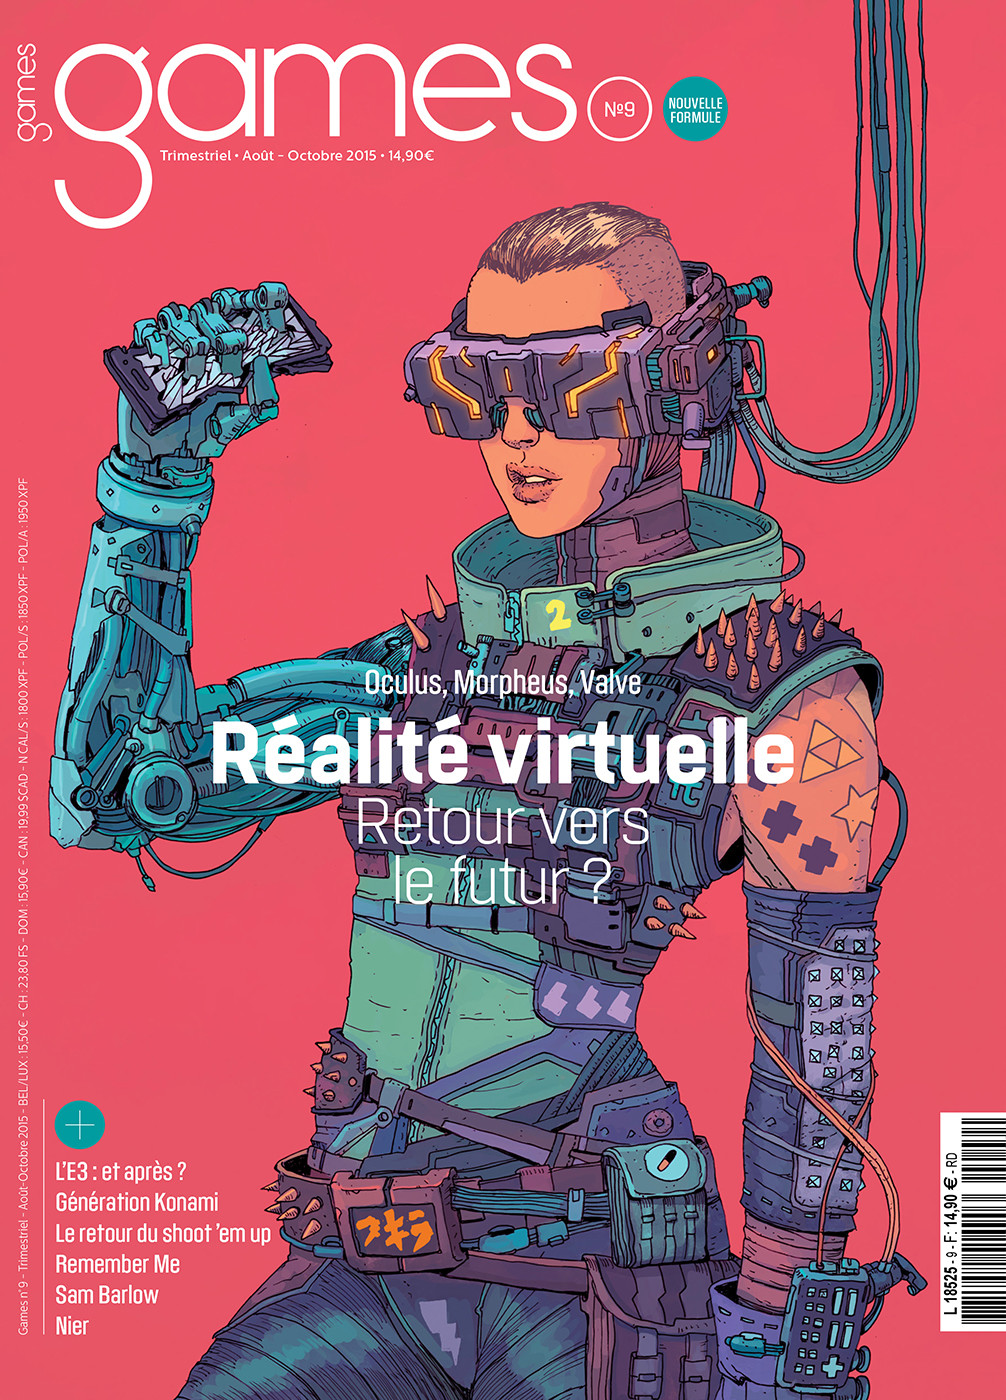 Illustration de presse : couverture de magazine par Jo San